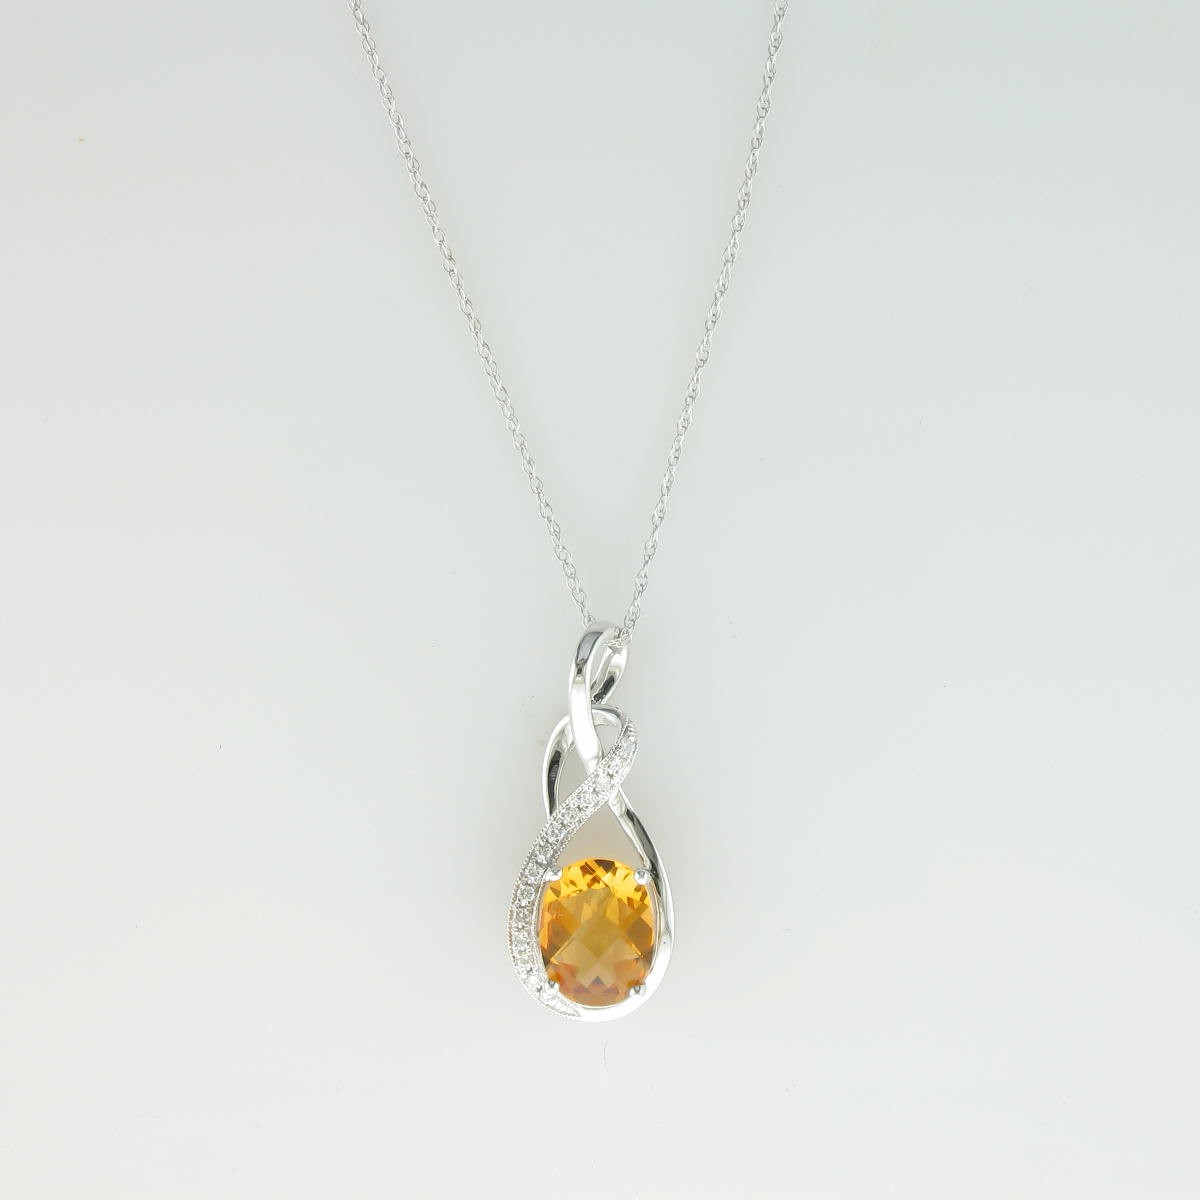 1.60ct Round Citrine and Diamond Necklace set in 14k White Gold